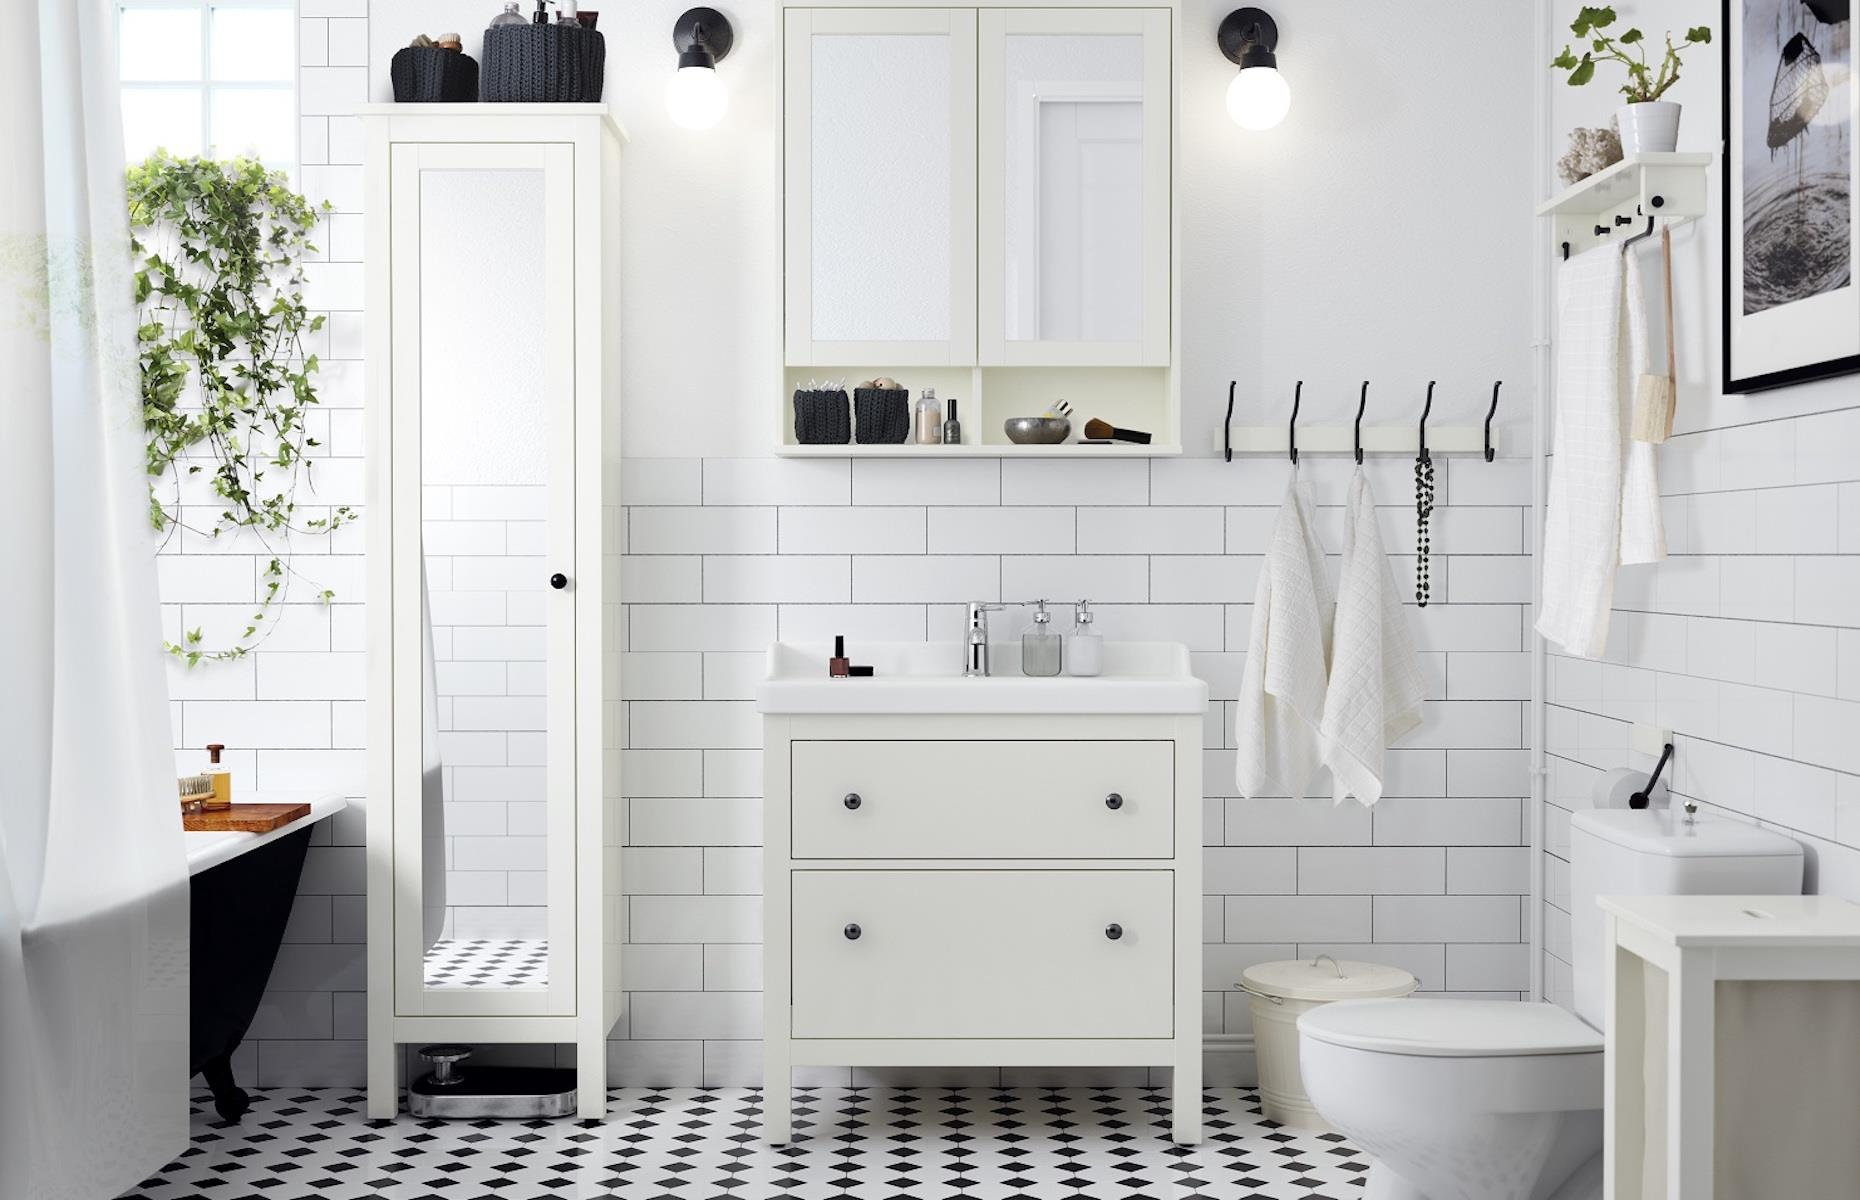 Aim for a modern, neutral interior that a buyer can put their own stamp on. Image: IKEA